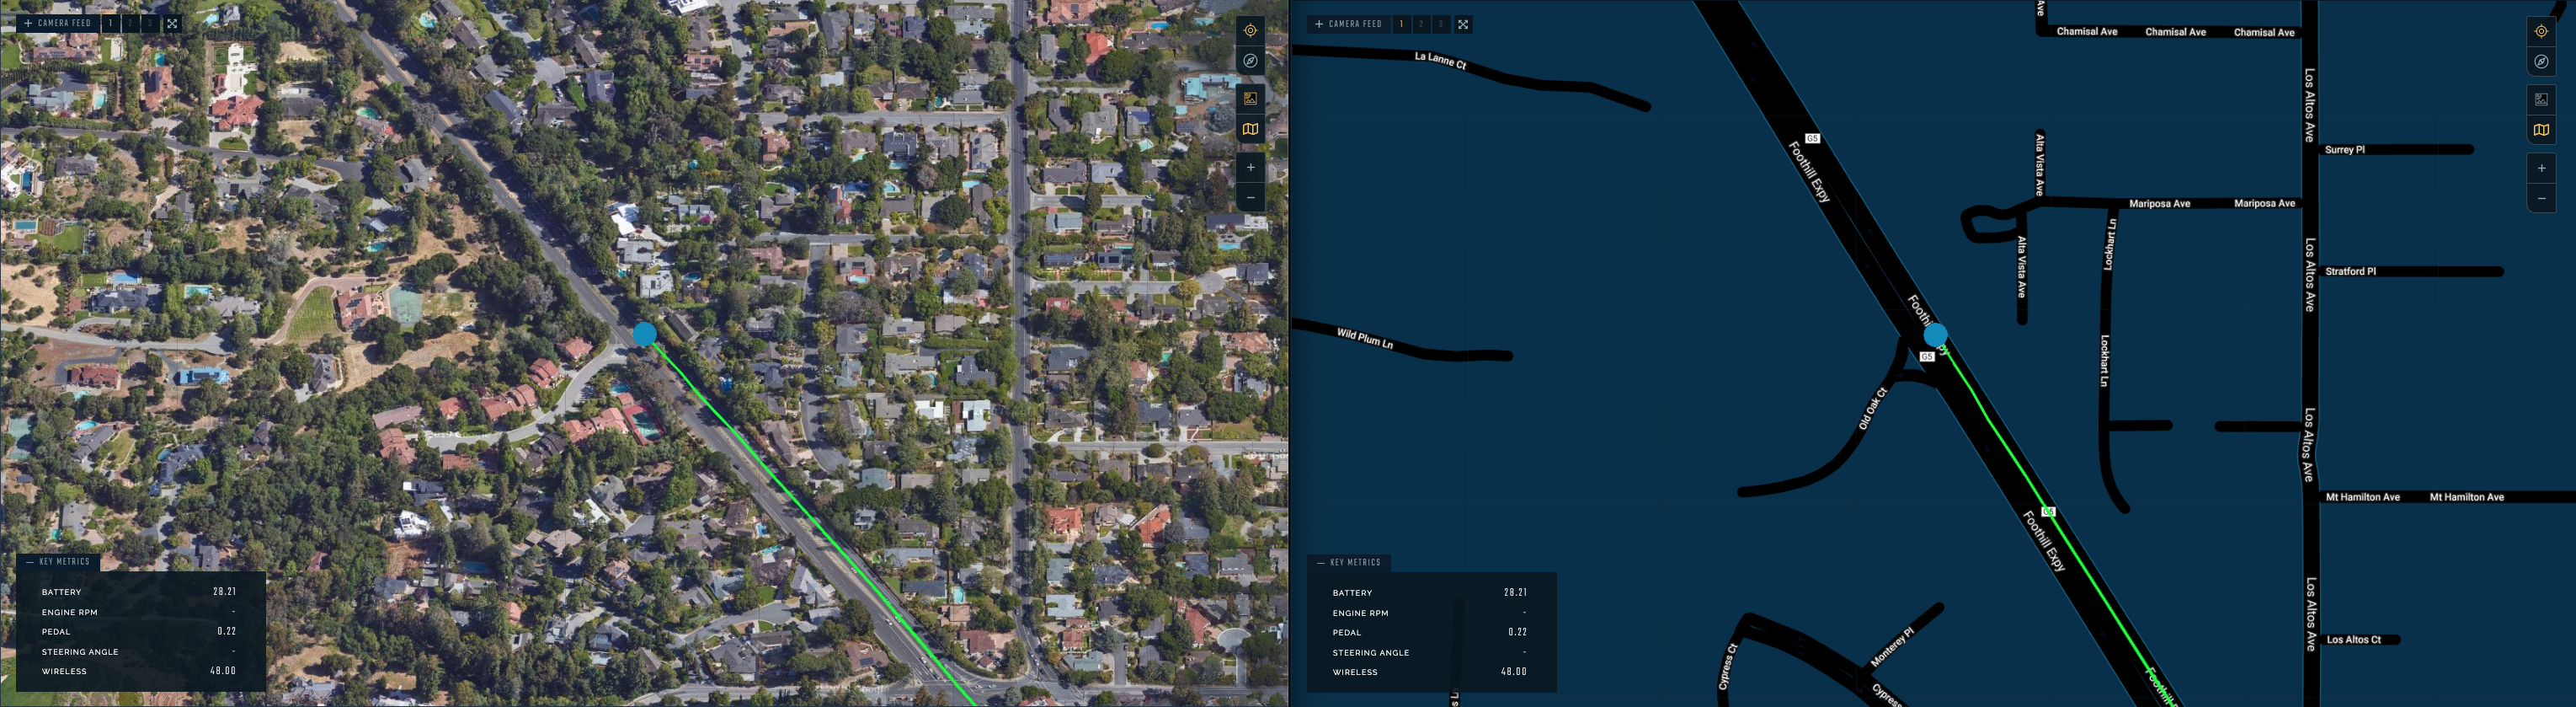 You can use a satellite or simplified street map for navigation.